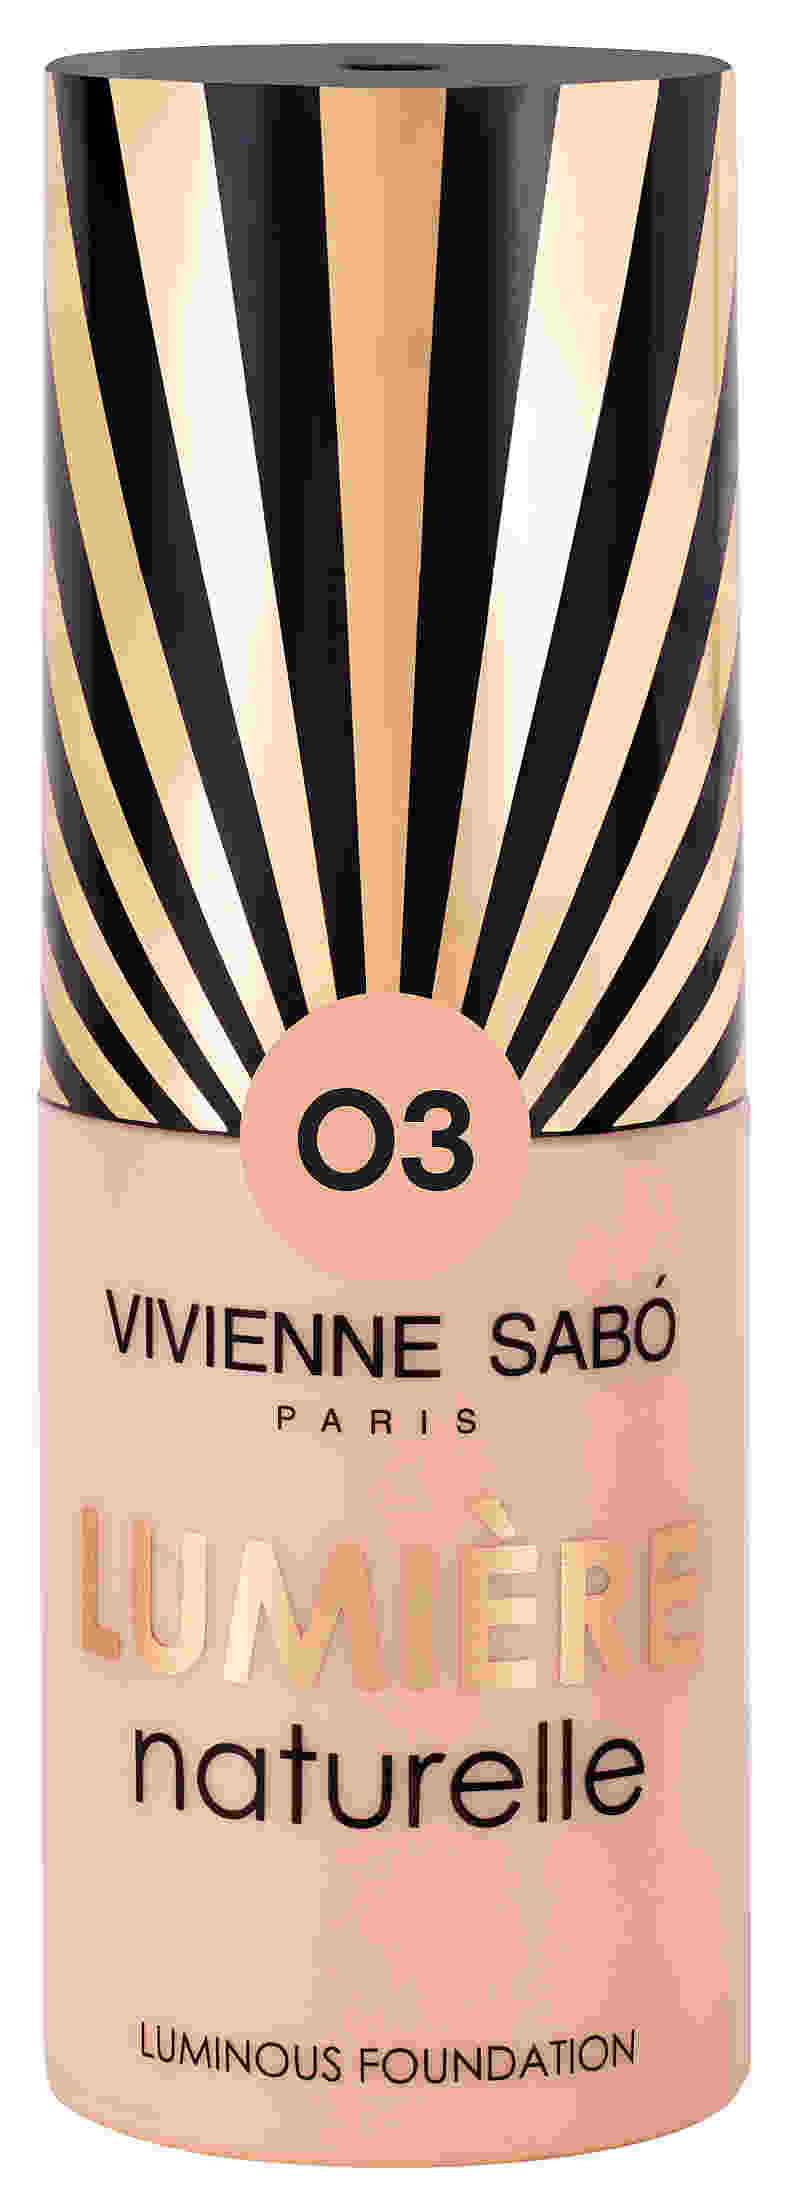 Vivienne Sabo - Luminous Foundation Lumiere Naturelle, 25 ML